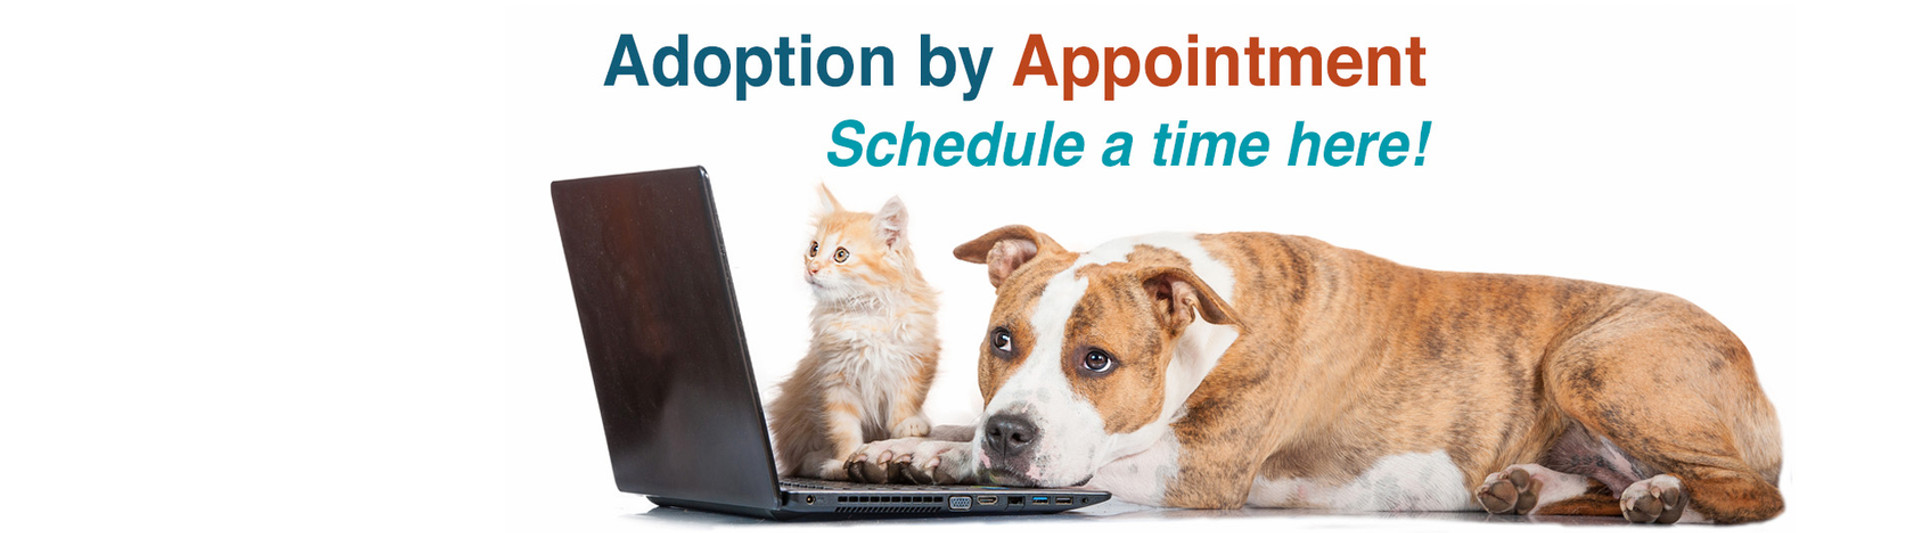 Adoption by Appointment